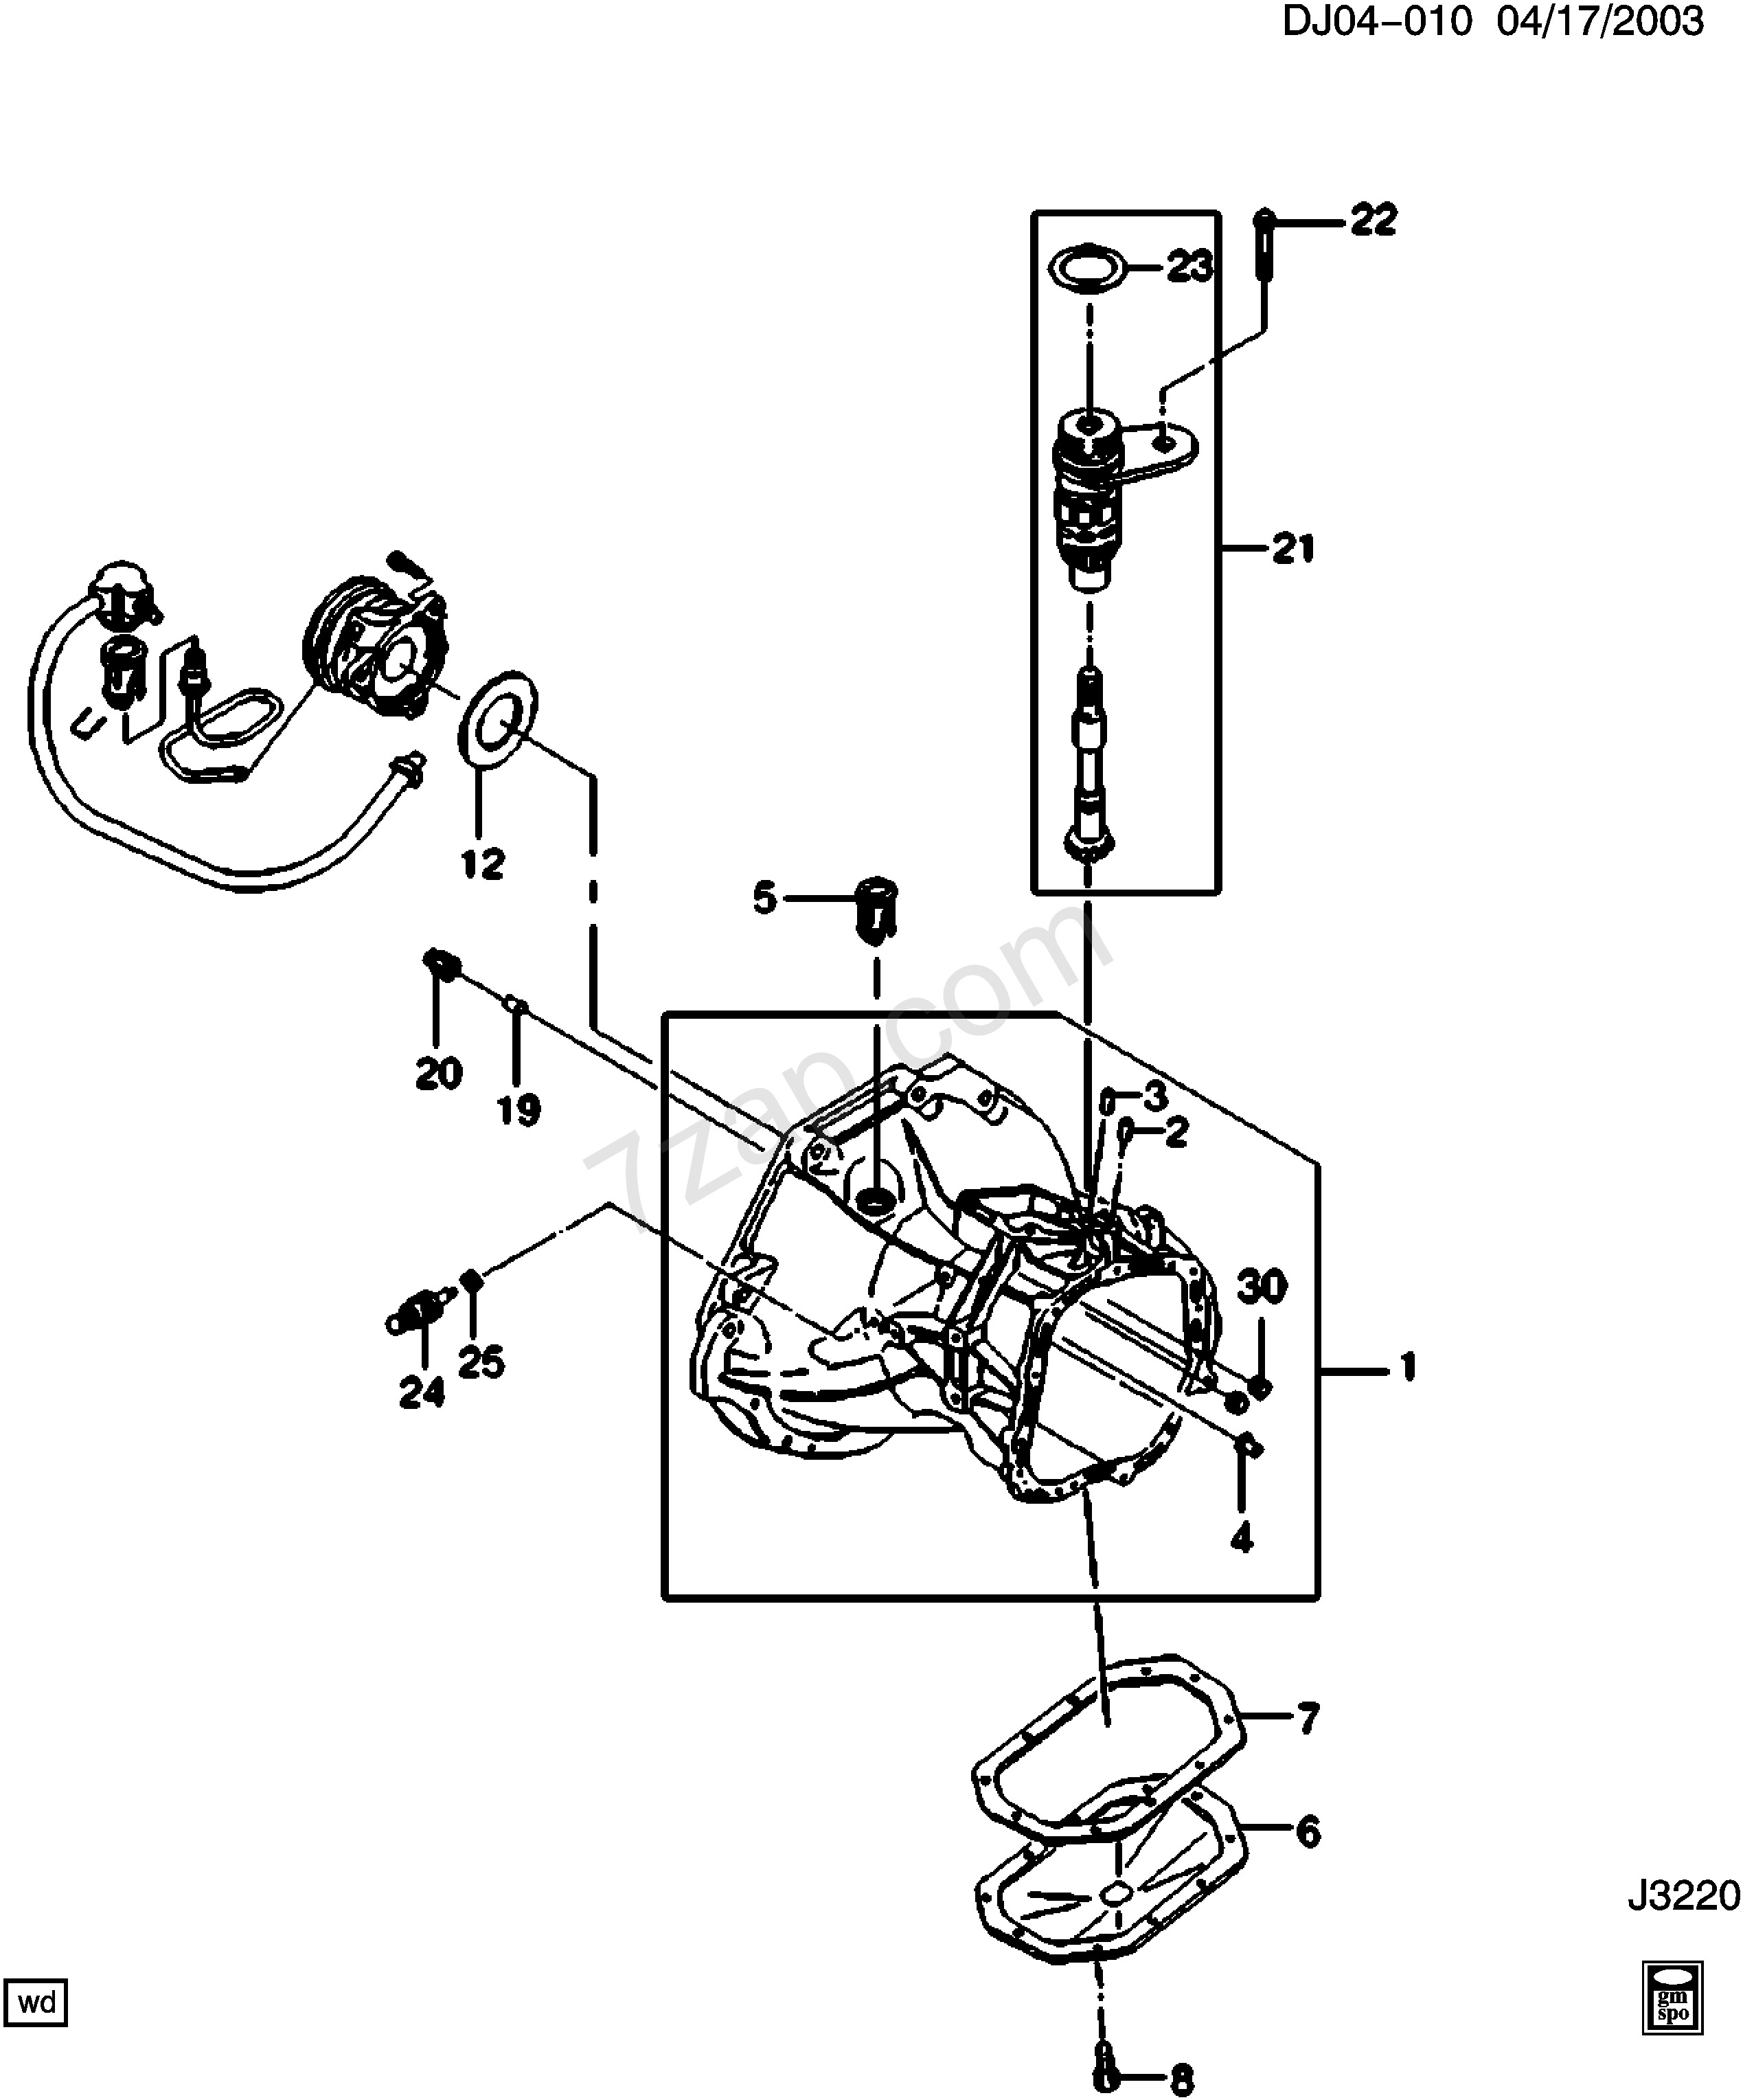 Manual Transmission Clutch Diagram 2004 2007 J 5 Speed Manual Transmission Part 6 Clutch Release Lever Of Manual Transmission Clutch Diagram